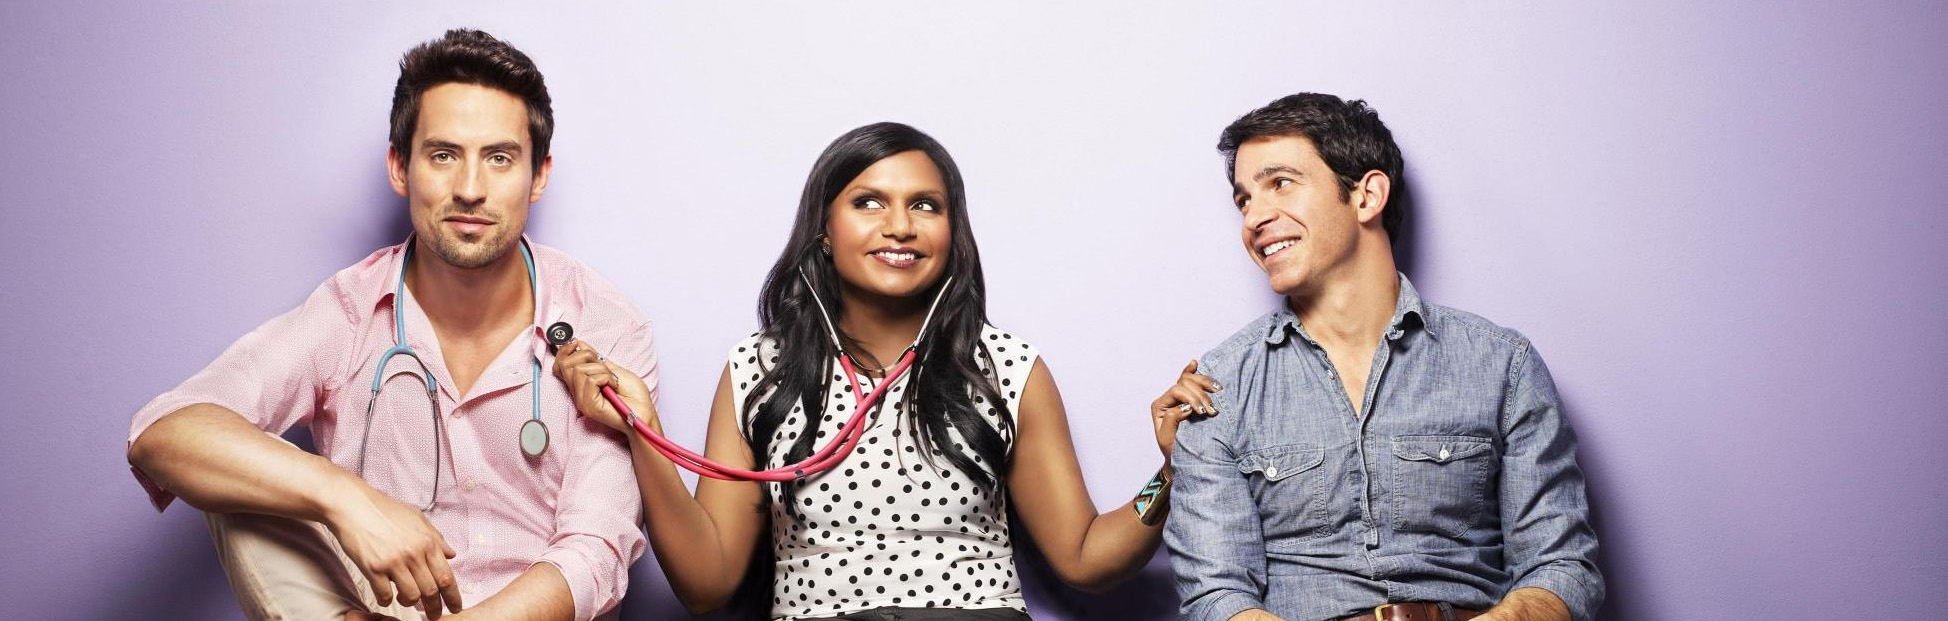 The Mindy Project's winter finale warms the heart